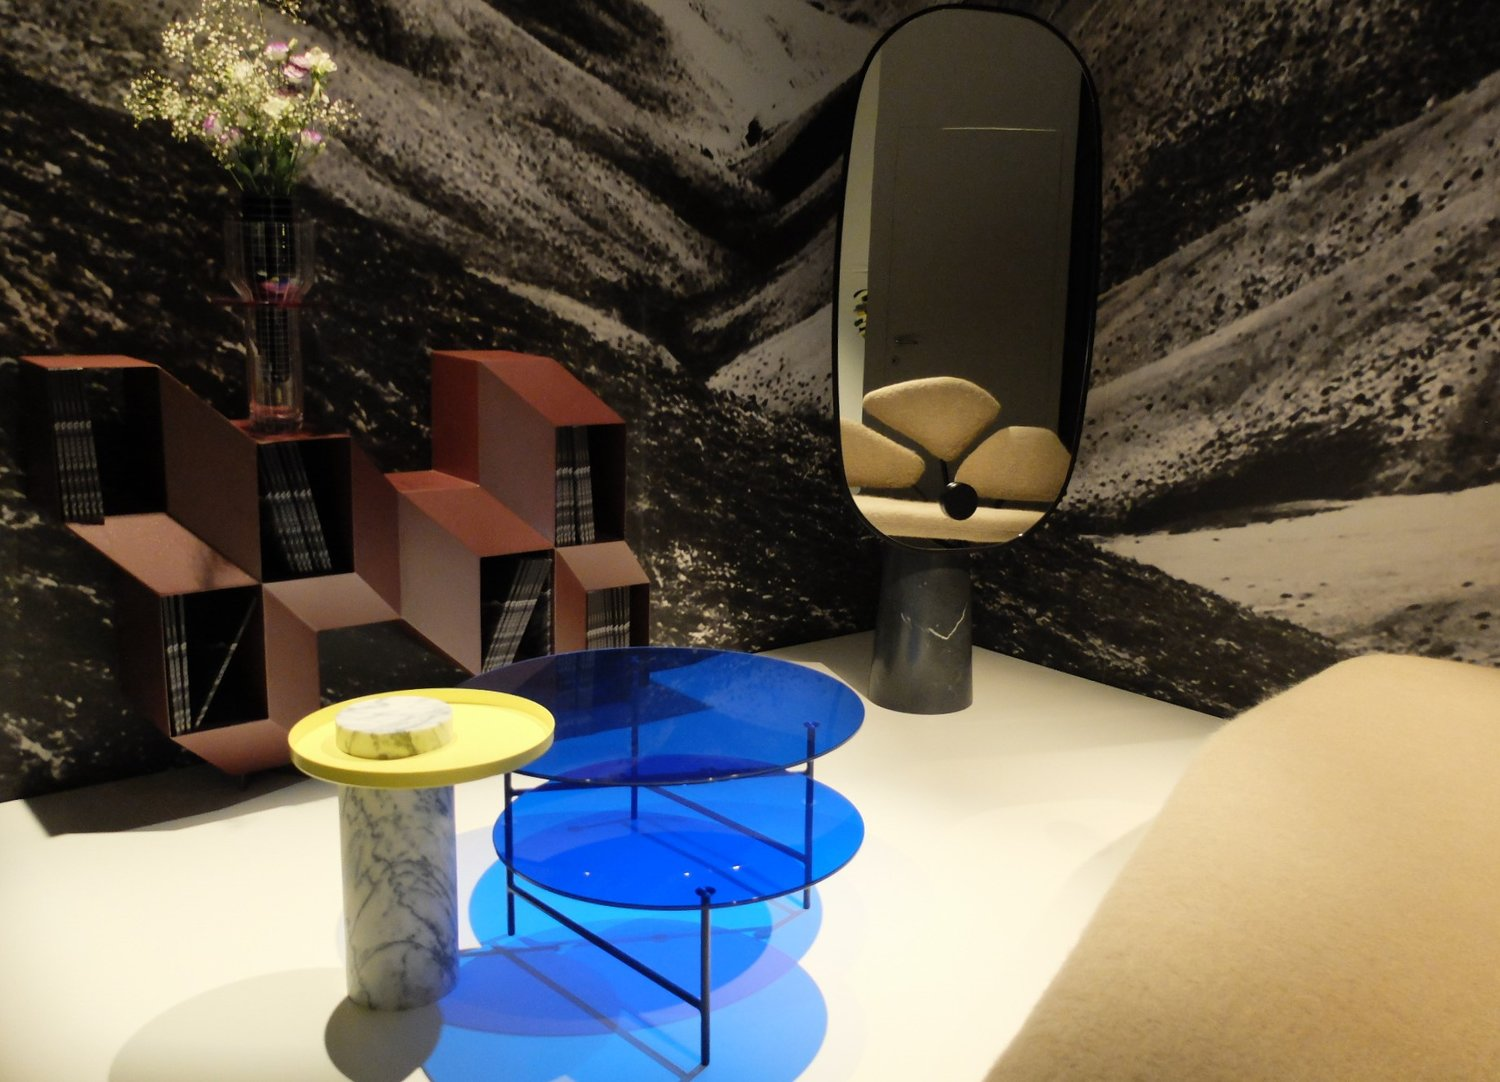 Rocky credenza by Charles Kalkapian, Zorro coffee table by Note Design Studio, Iconic Standing Mirror by Dan Yeffet and Lucie Koldova and Salute table collection by Sebastien Herkner. LA CHANCE